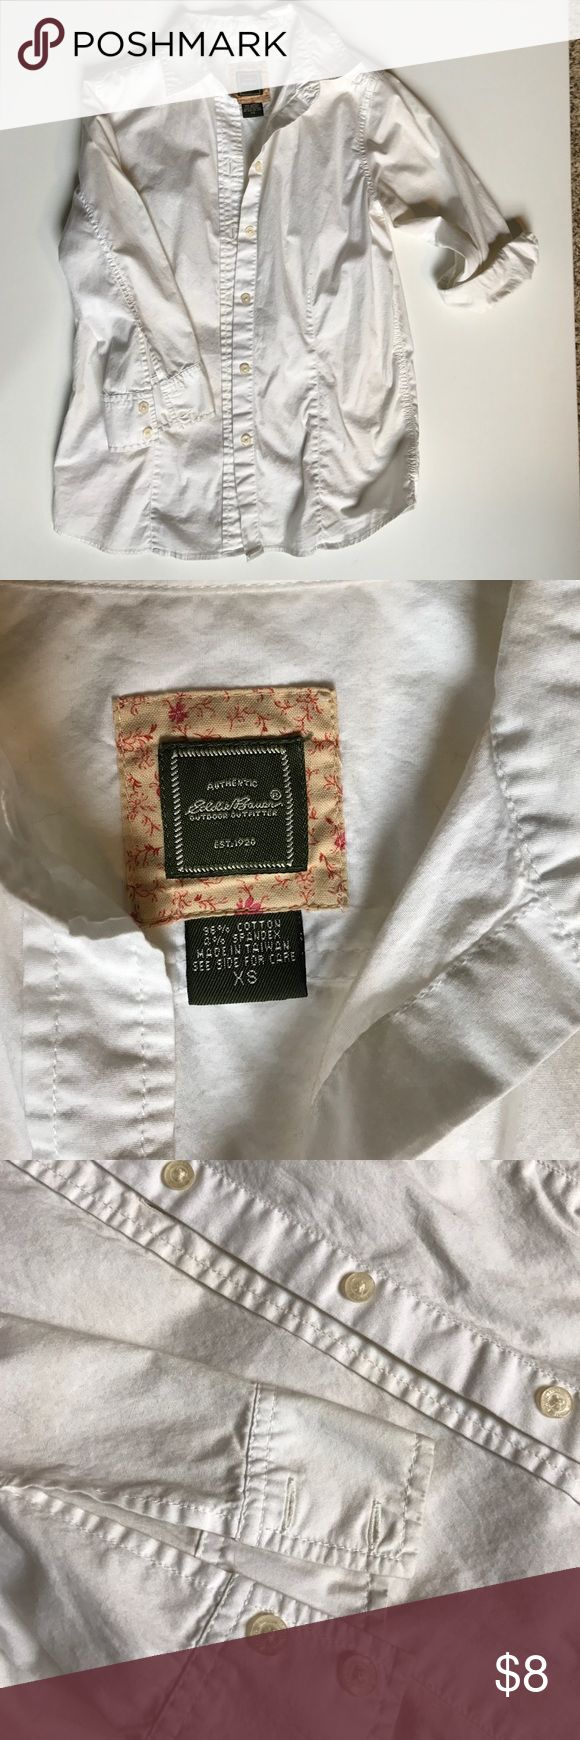 White button up Lightly worn, good structure, could use a bleach wash to brighten white again, leaving to buyer care Eddie Bauer Tops Button Down Shirts